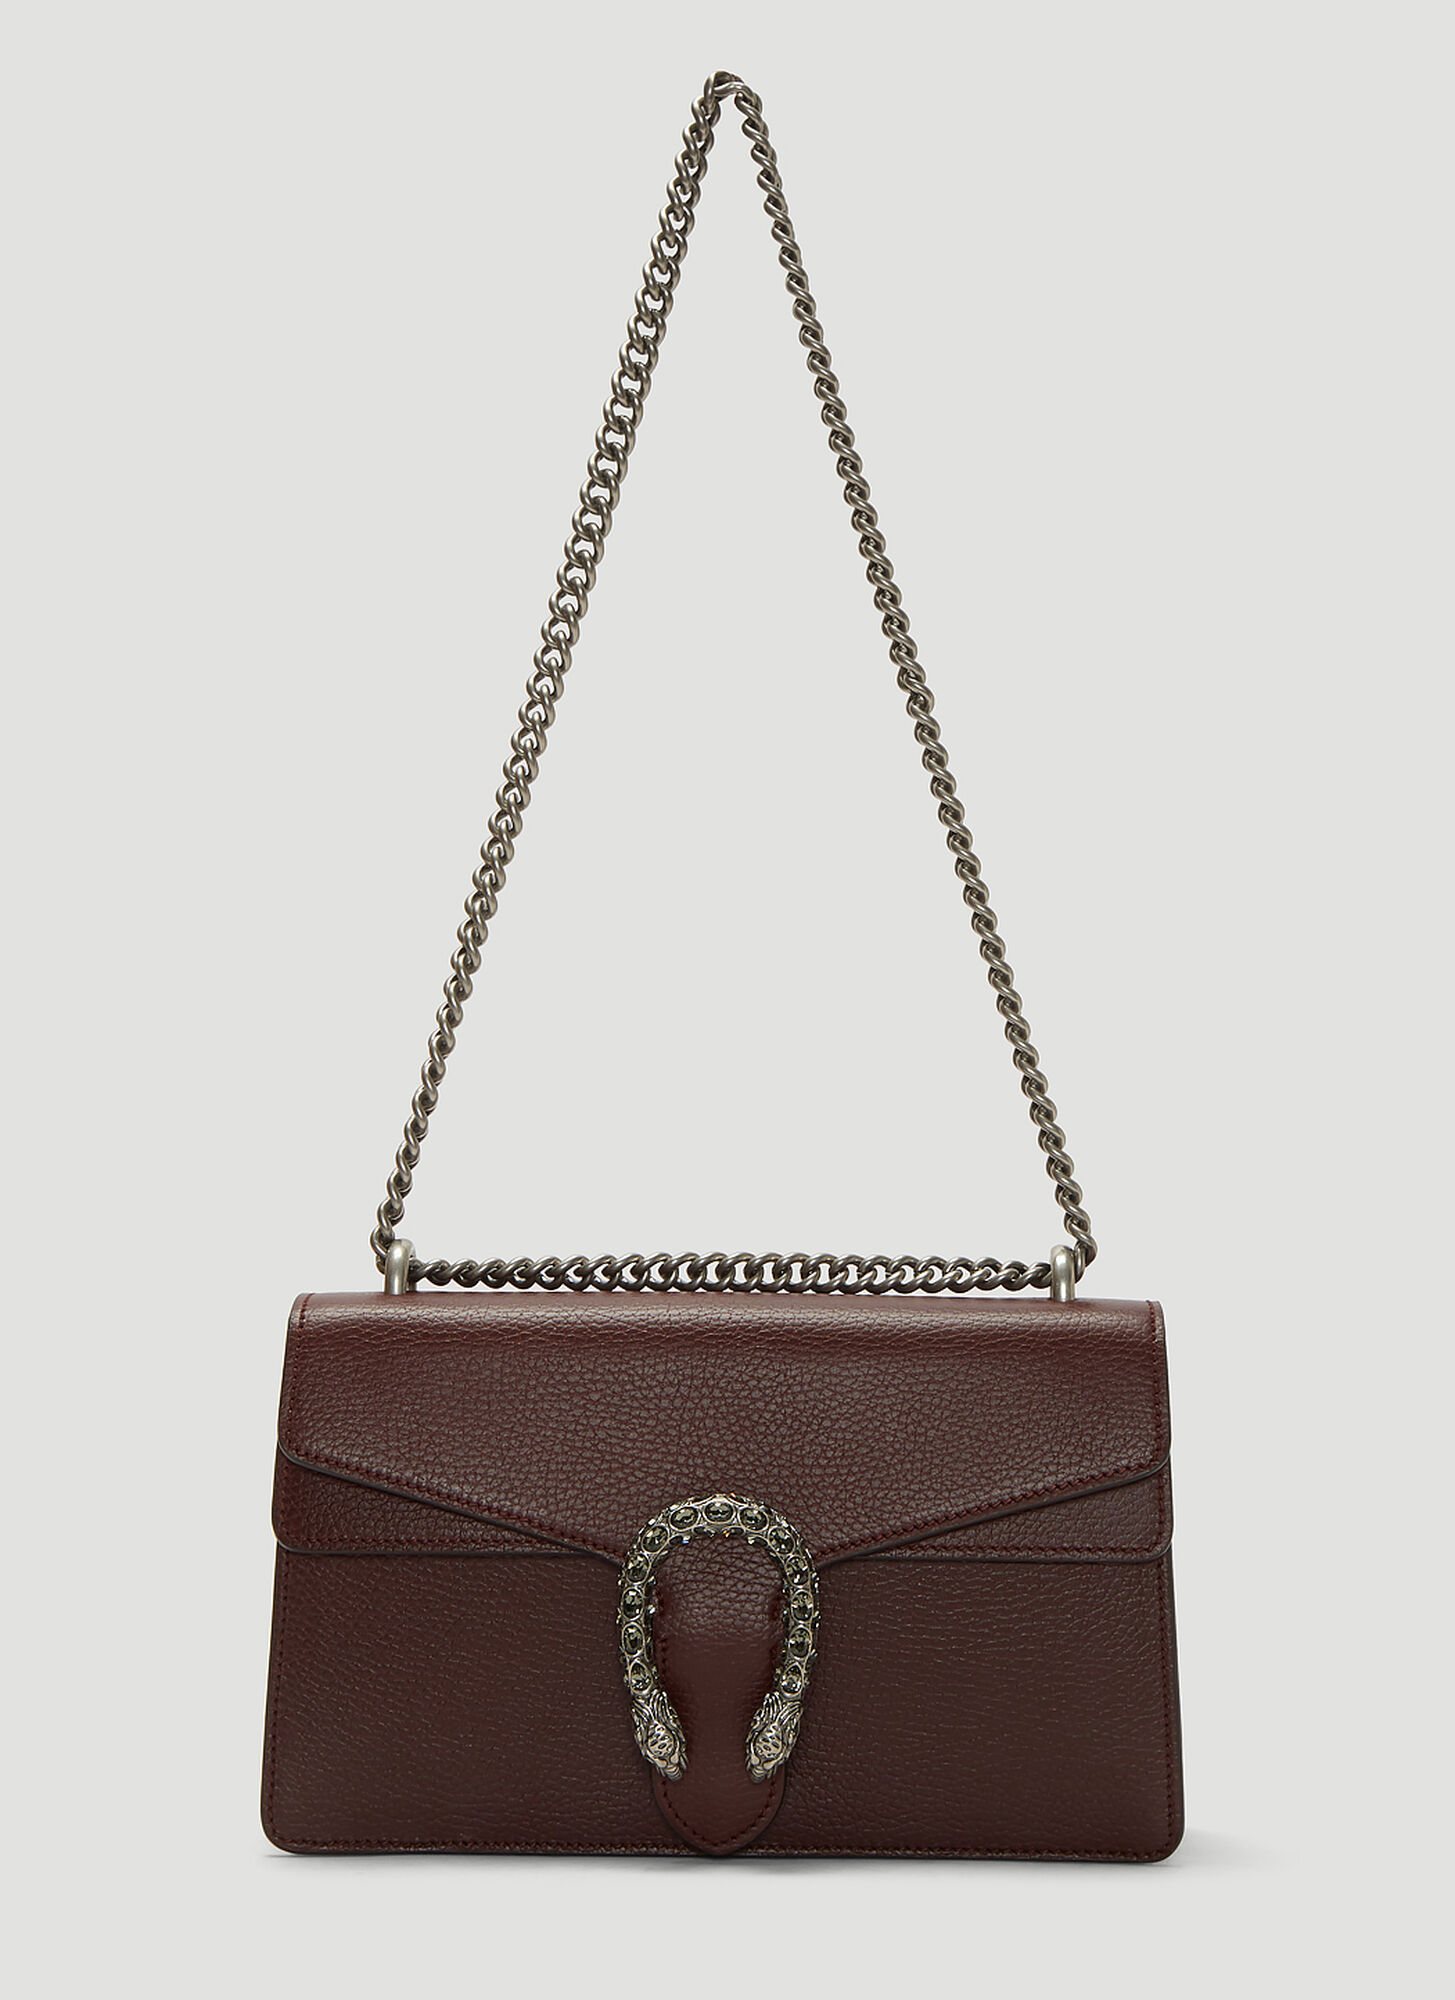 Gucci Dionysus Shoulder Bag in Burgundy